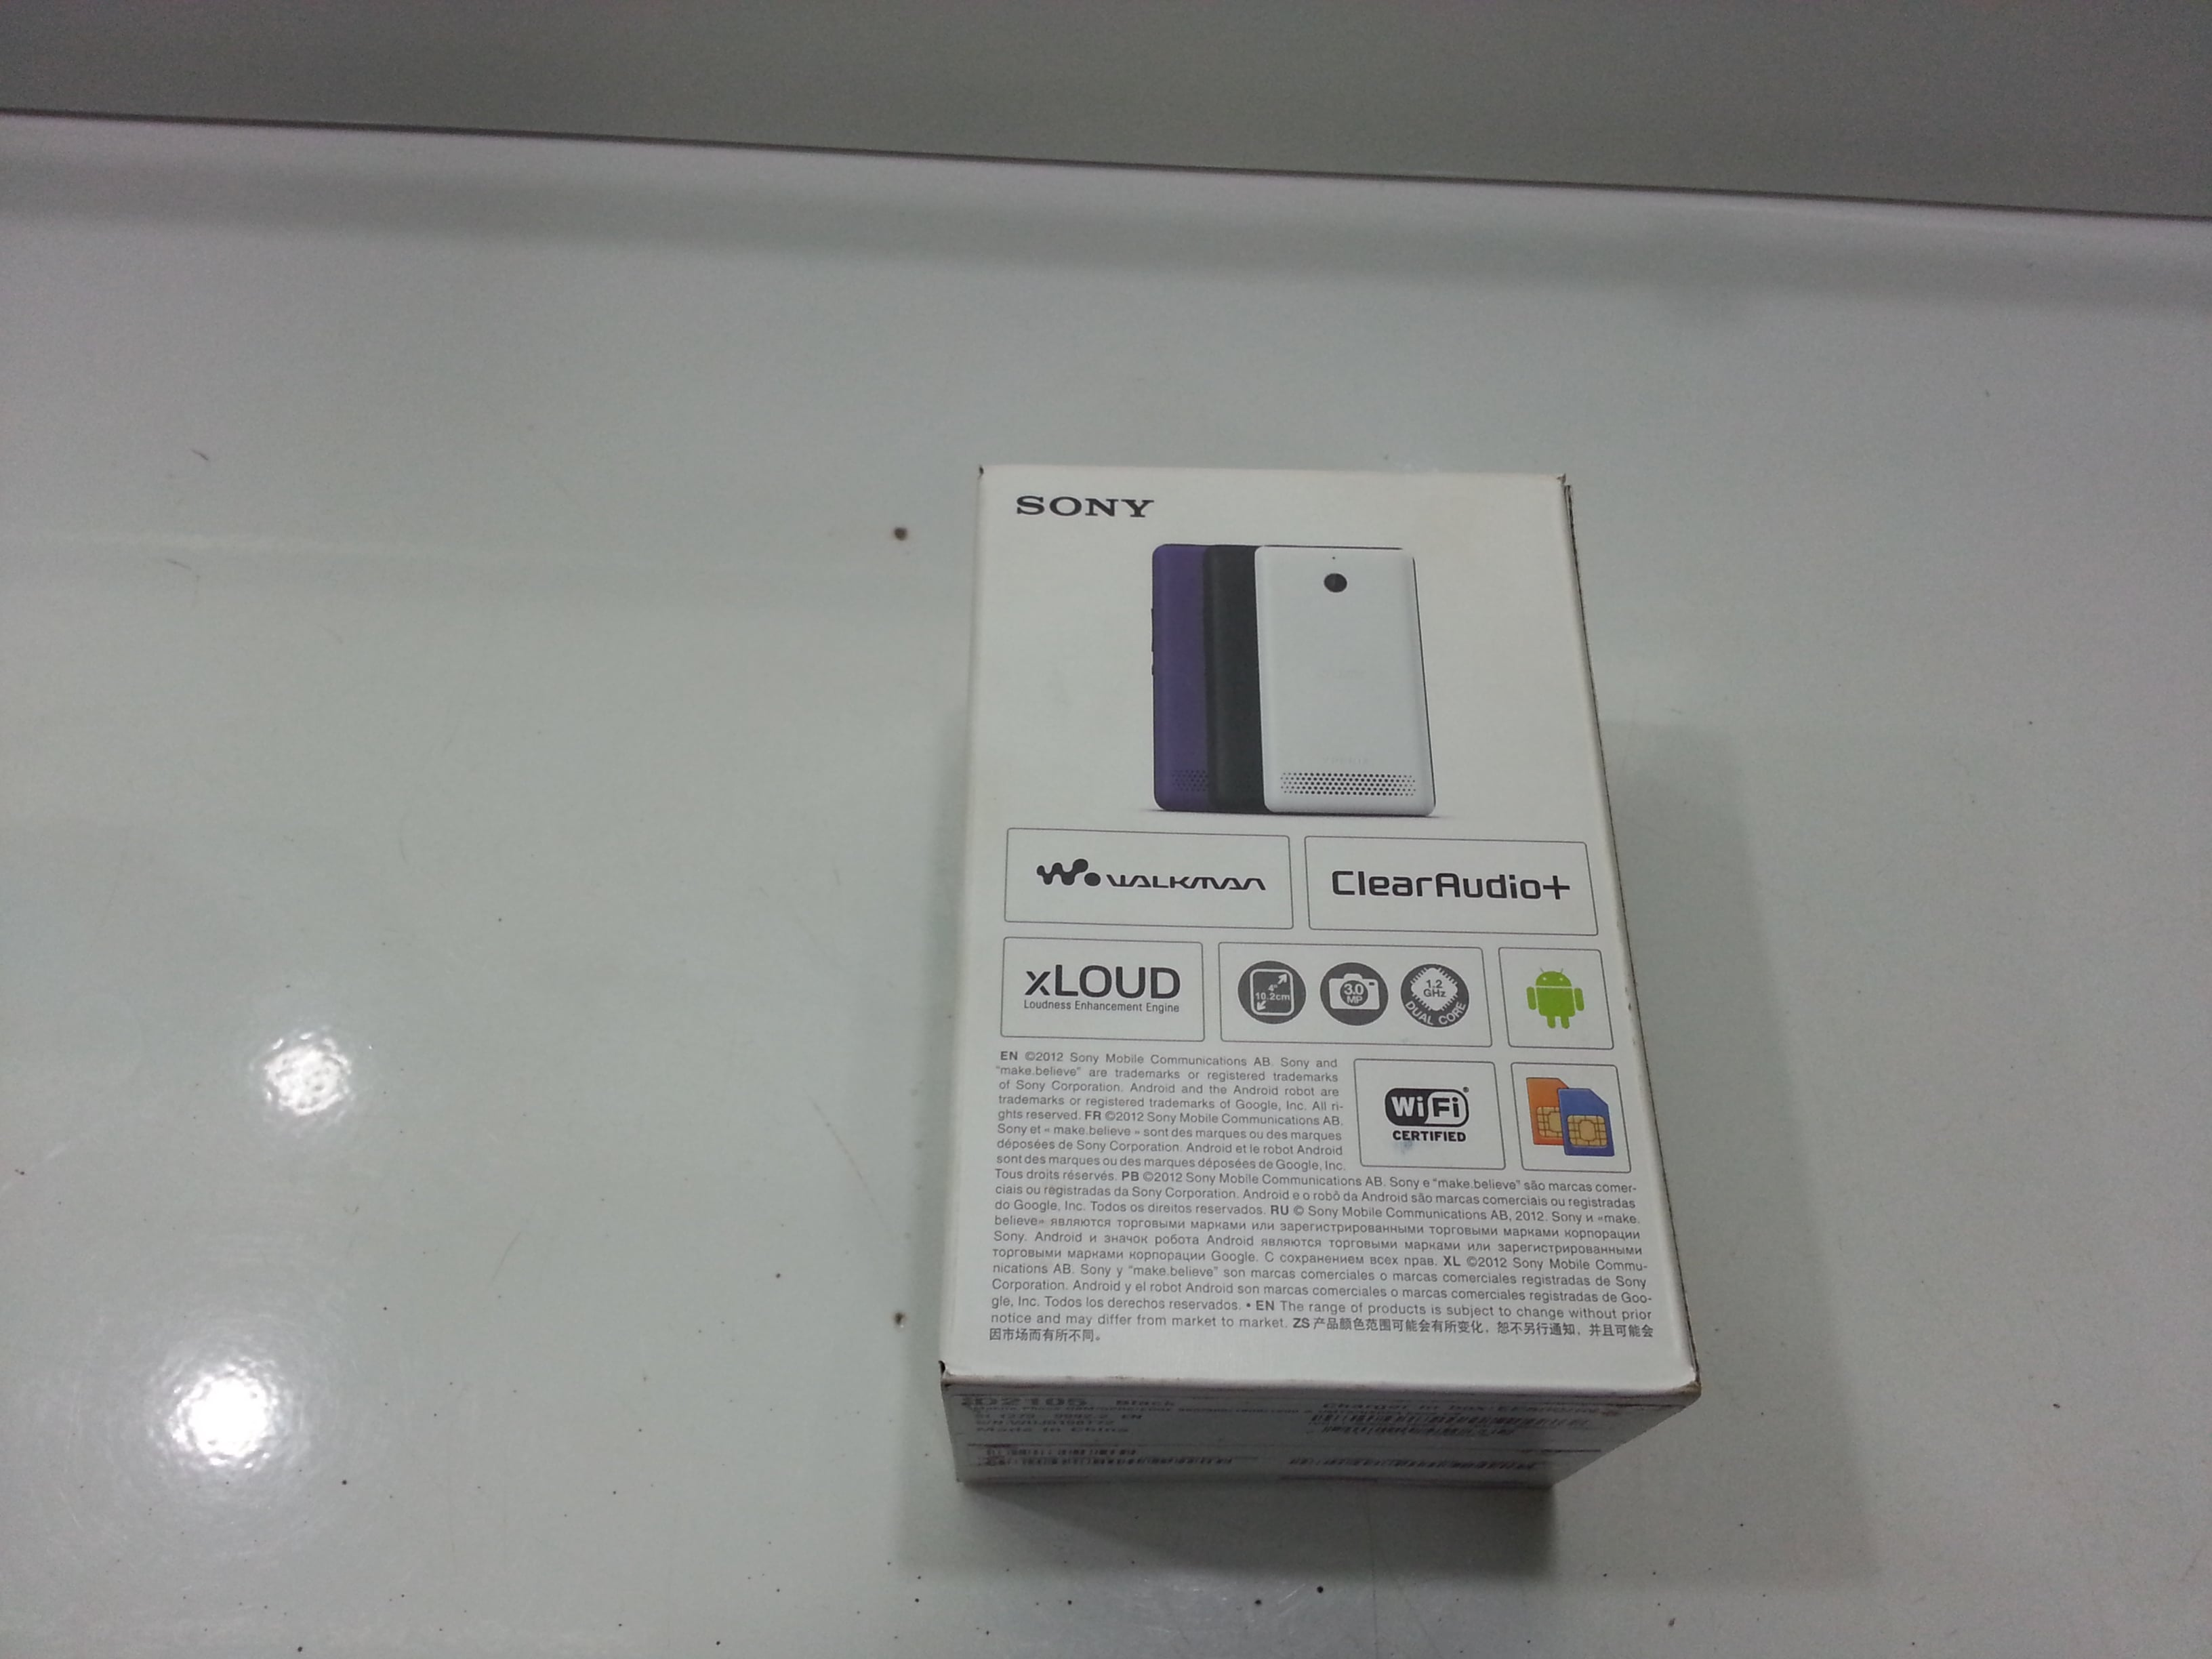 Sony-XperiaE1dual-Backside-box